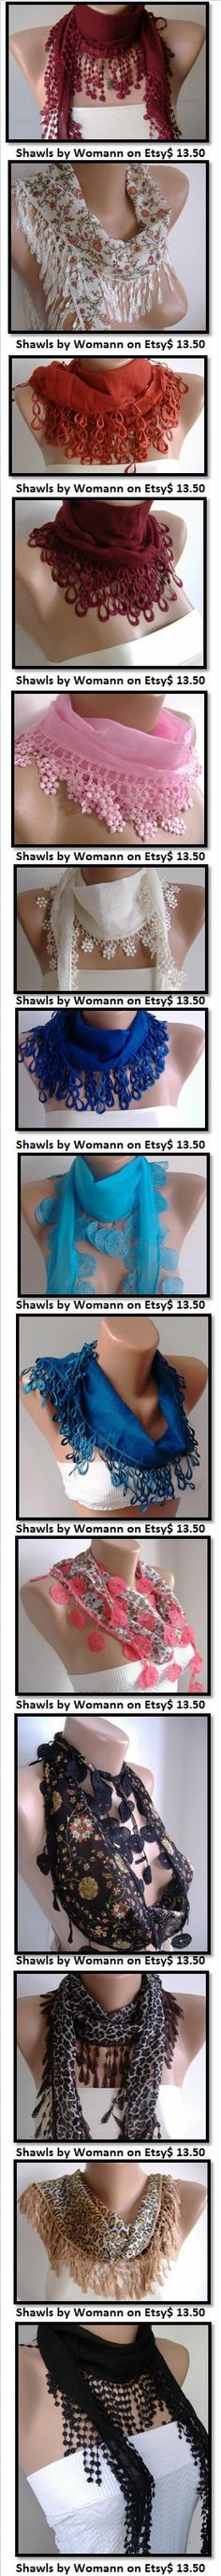 Royal Blue and Elegance Shawl / Scarf with Lace Edge by womann, $13.50